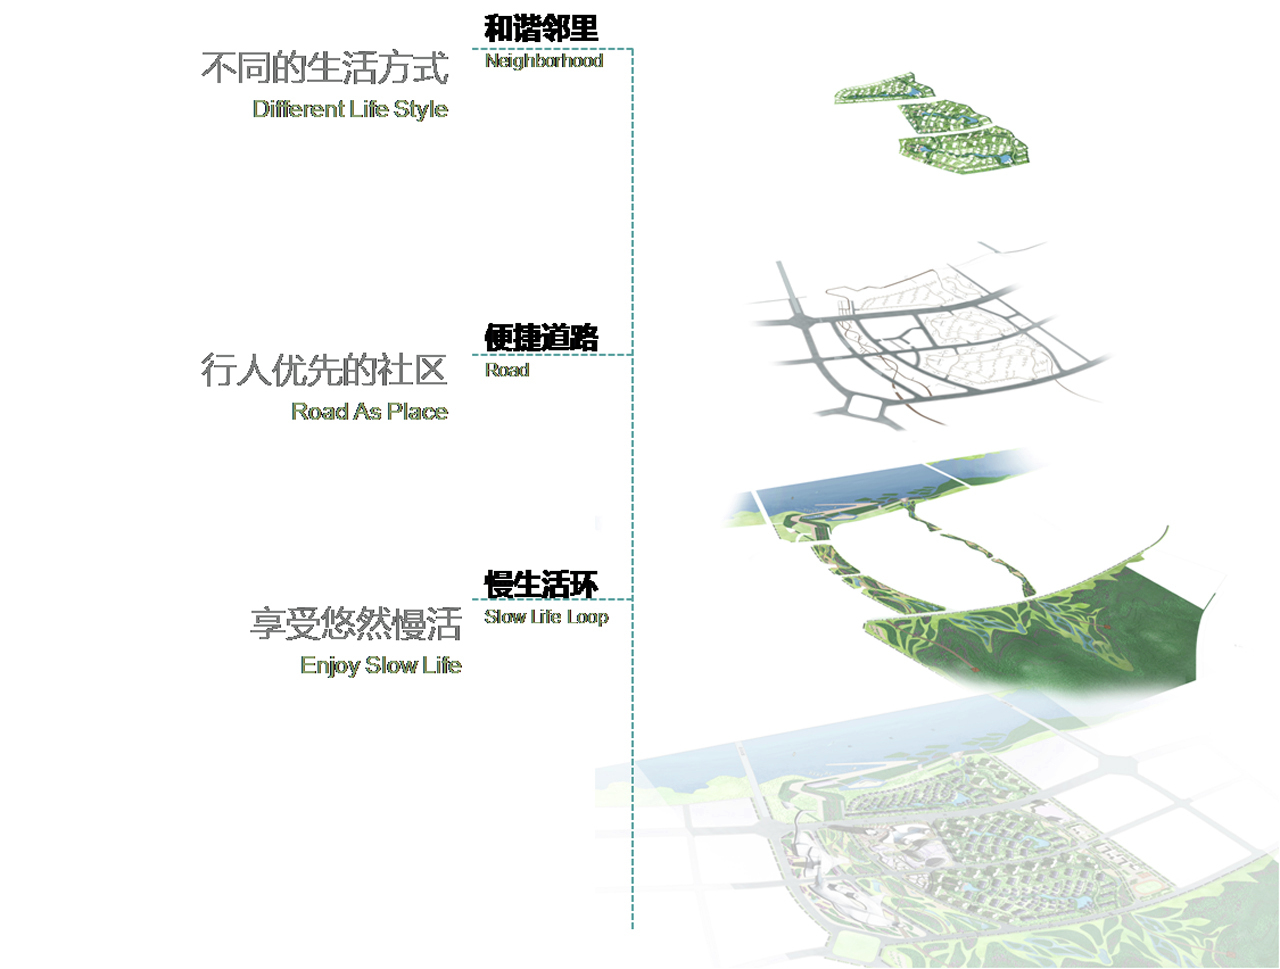 Gallery of jilin cbd master planning project aecom 11 jilin cbd master planning project aecomlandscape diagram pooptronica Gallery